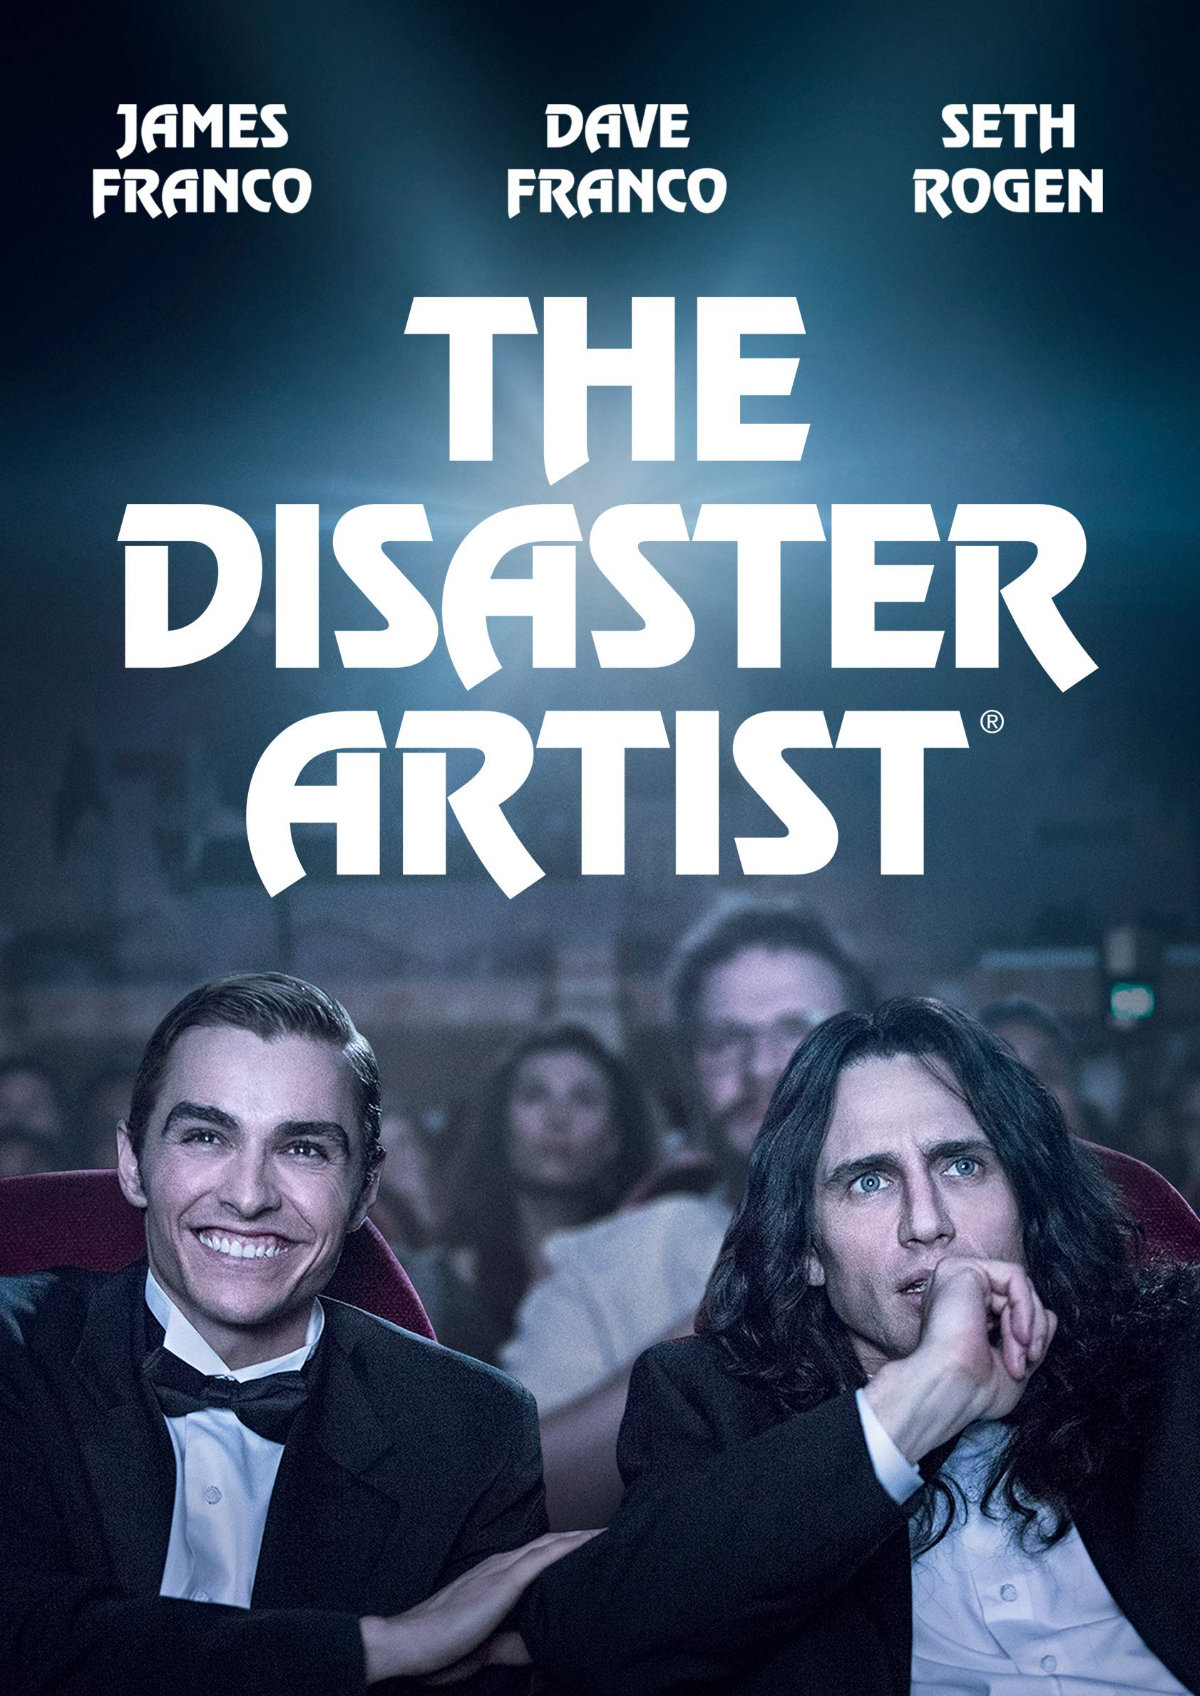 Poster for 'The Disaster Artist'